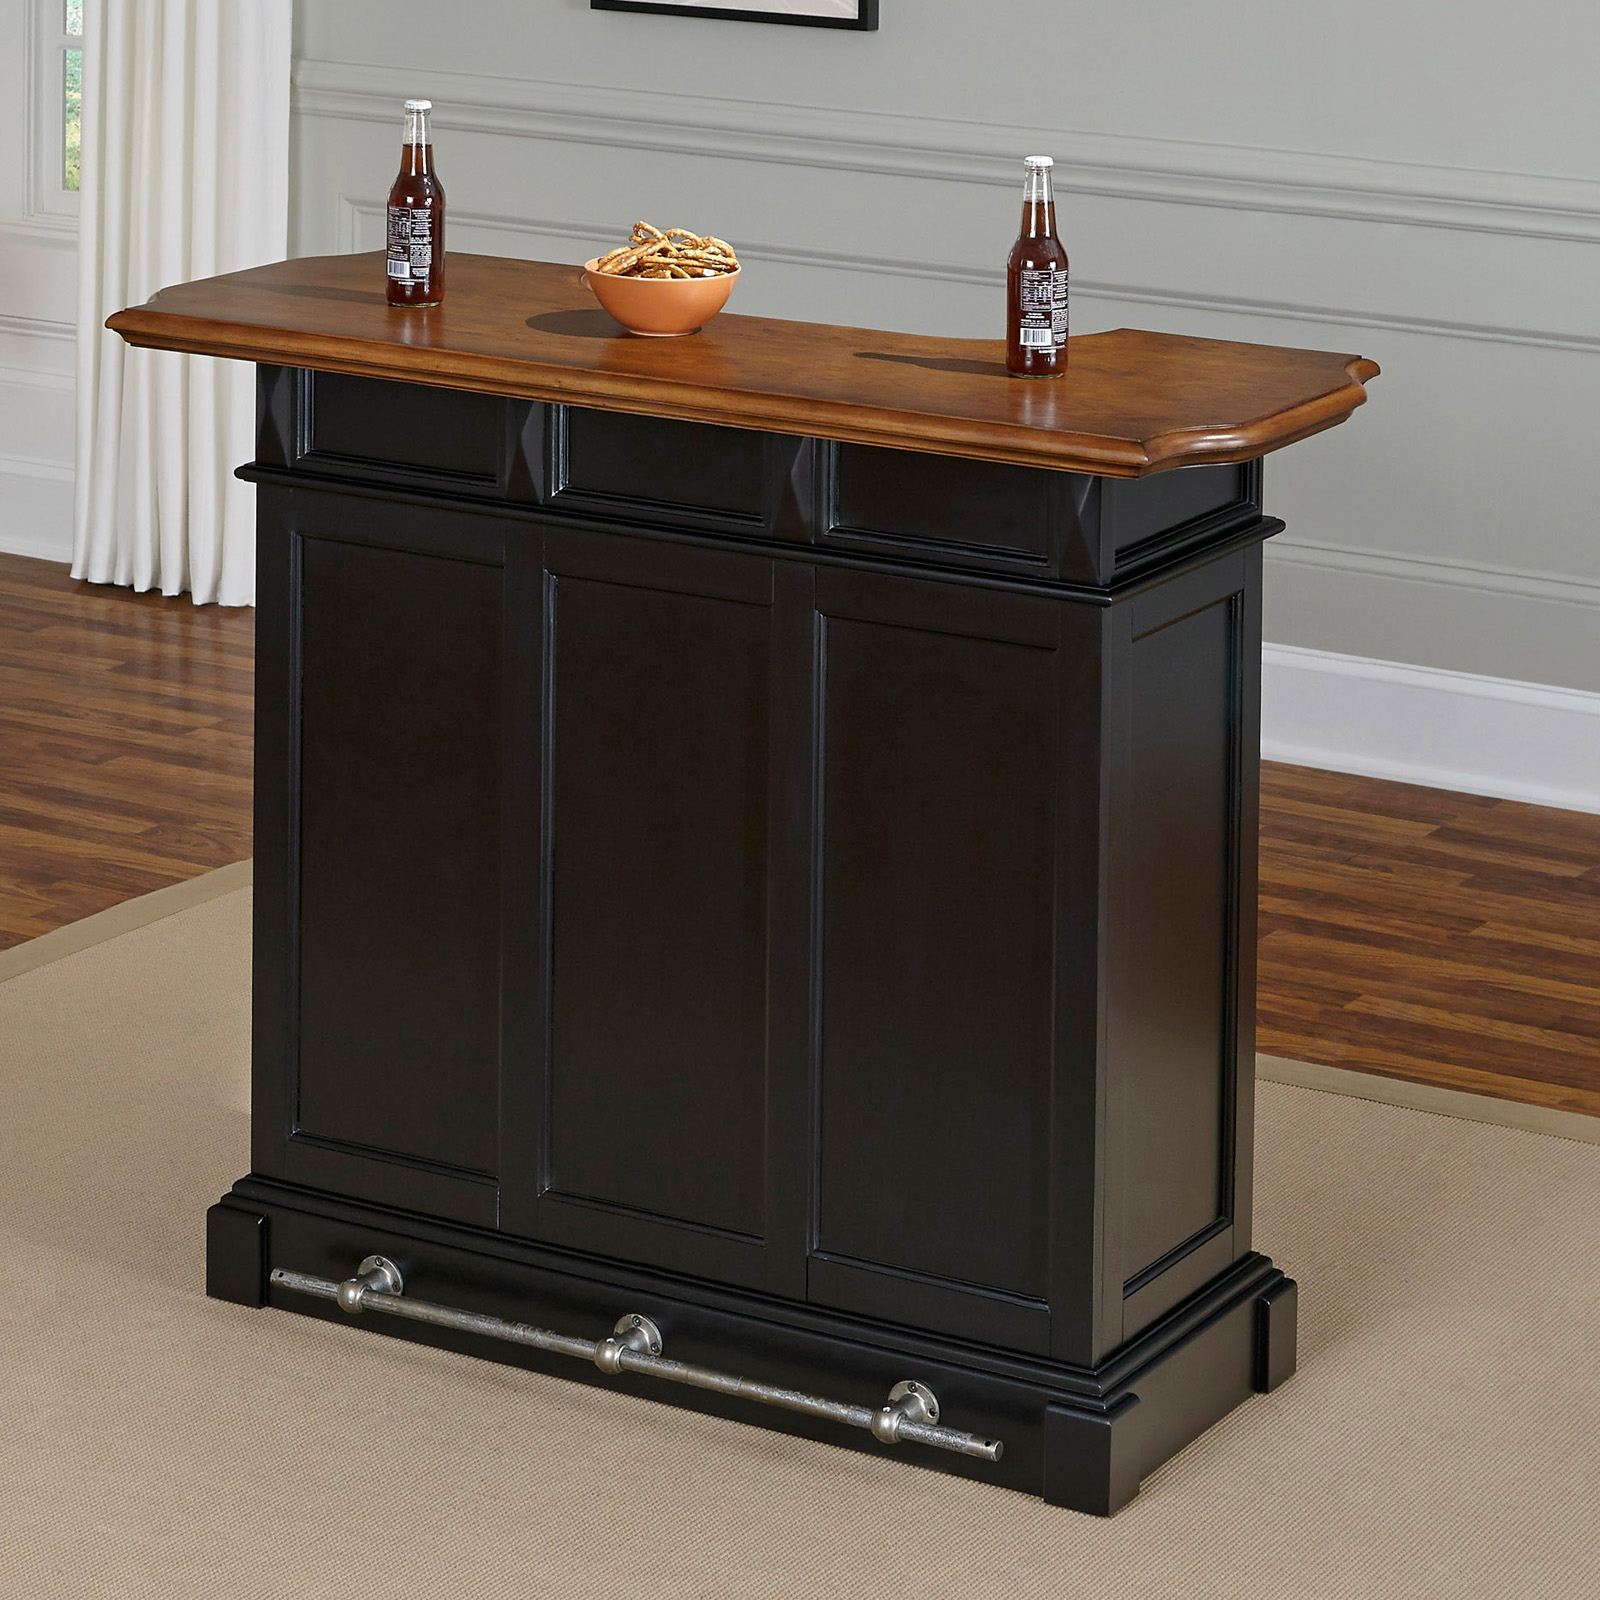 Merveilleux Home Styles Americana Home Bar With Storage